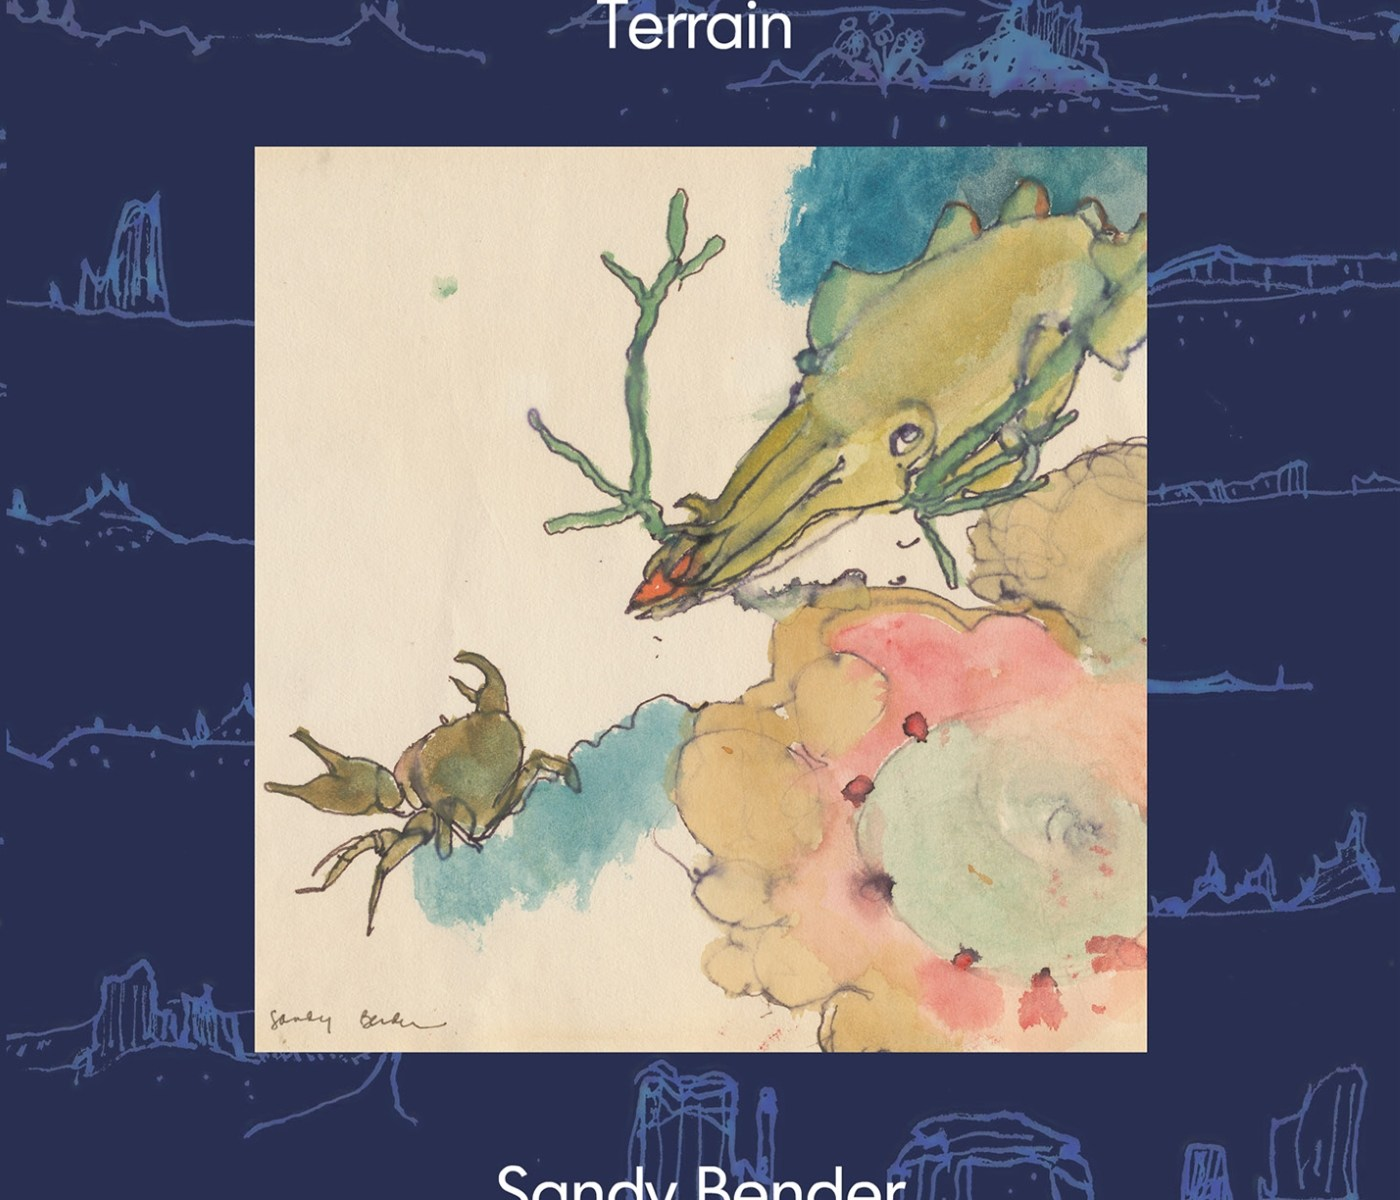 Album art for Terrain by Sandy Bender